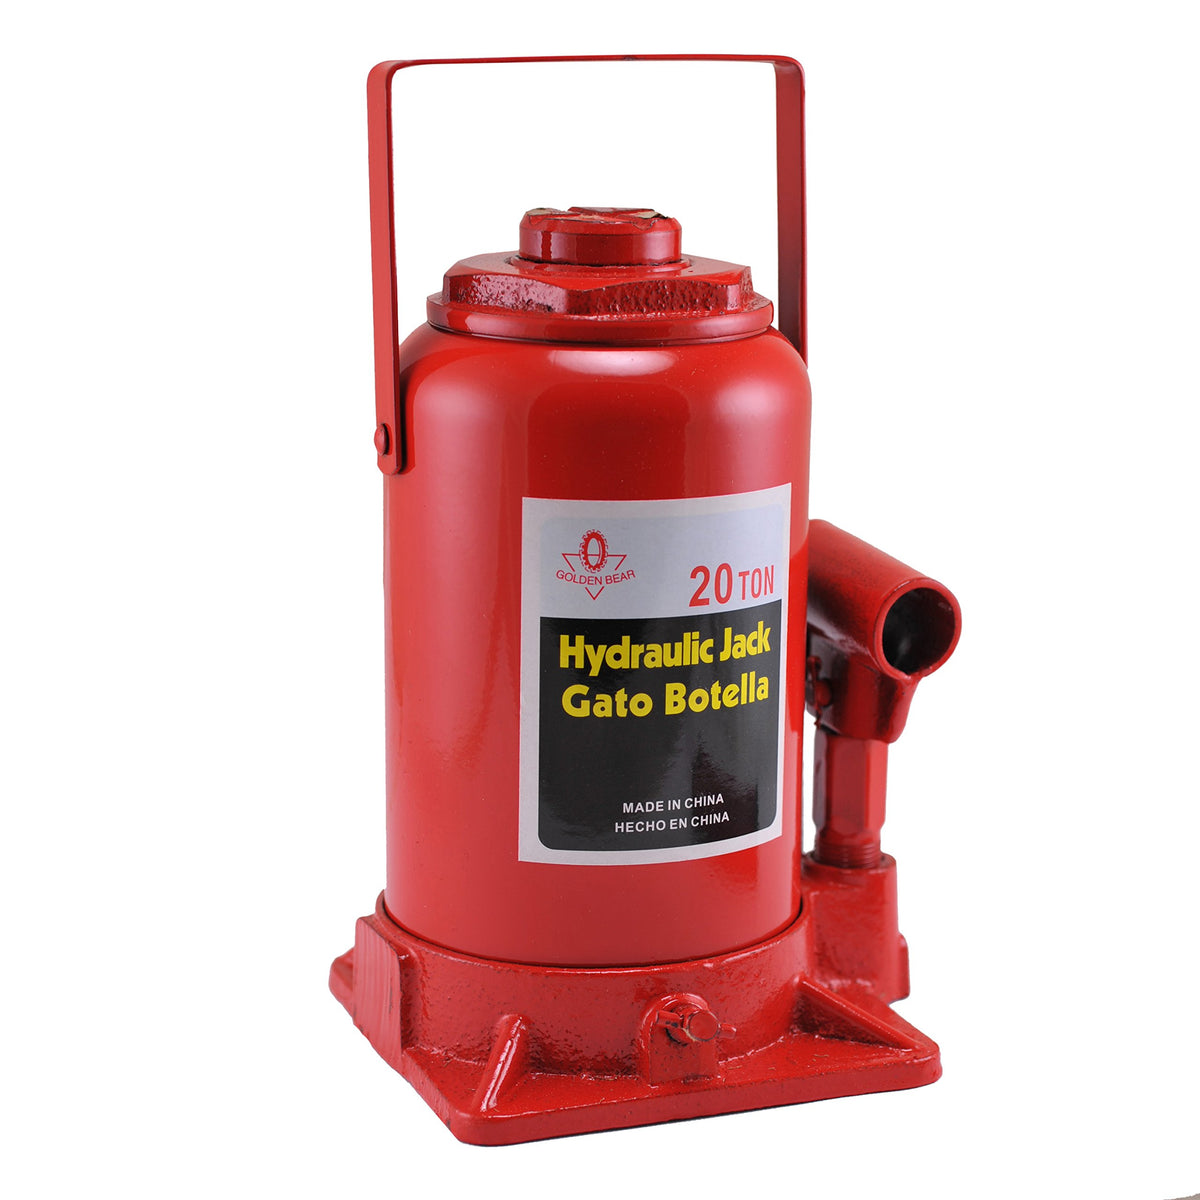 Hydraulic Bottle Jack, 20 Ton Capacity | High Lift, Heavy Duty